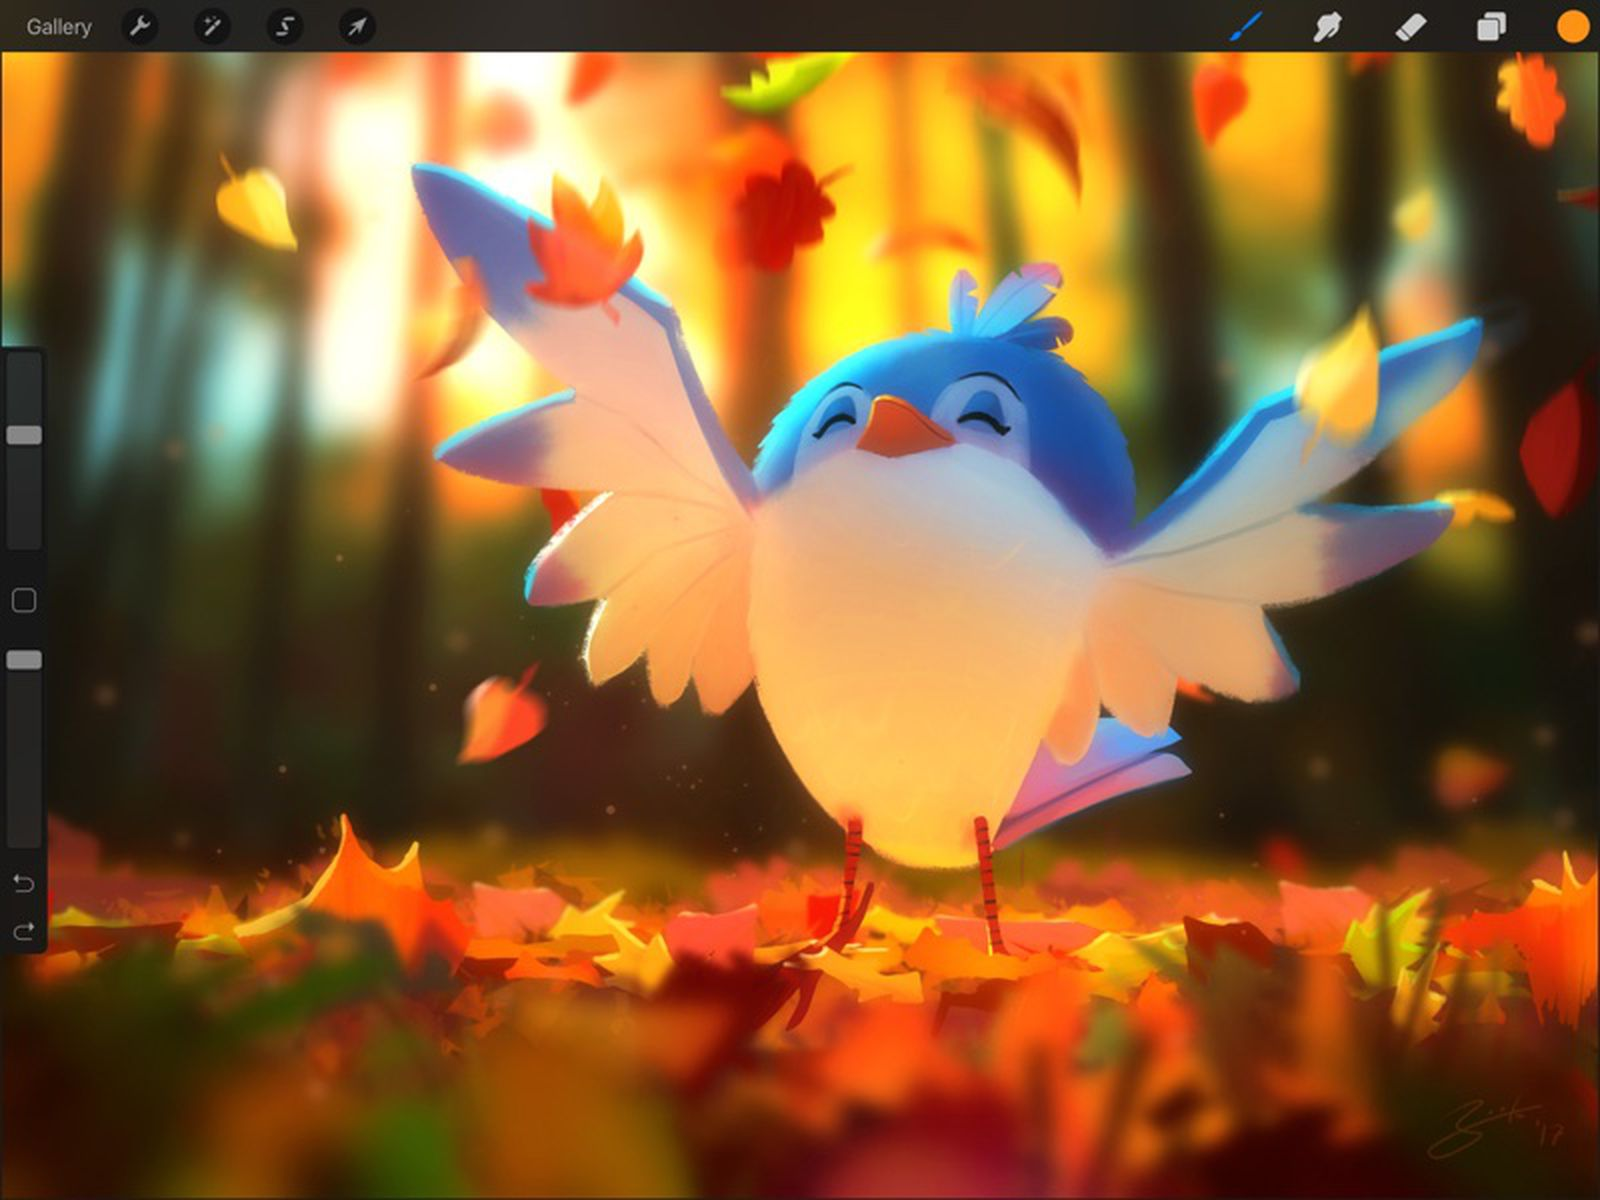 Procreate For Ipad Gains New Liquify Filter Warp Transform Mode And Symmetry Drawing Guide Macrumors